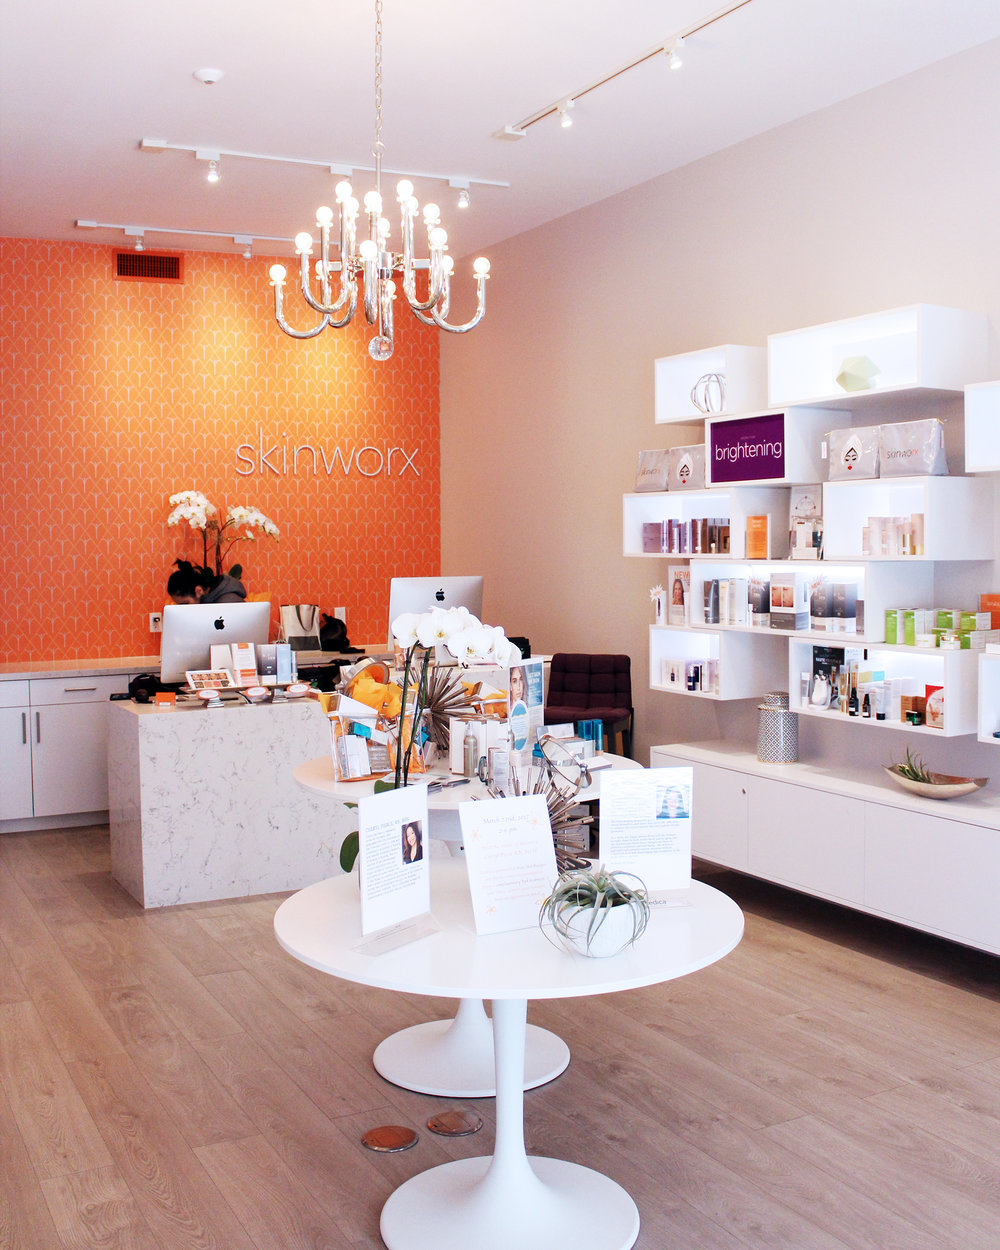 The bright, airy interior of Skinworx at Cow Hollow, SF.